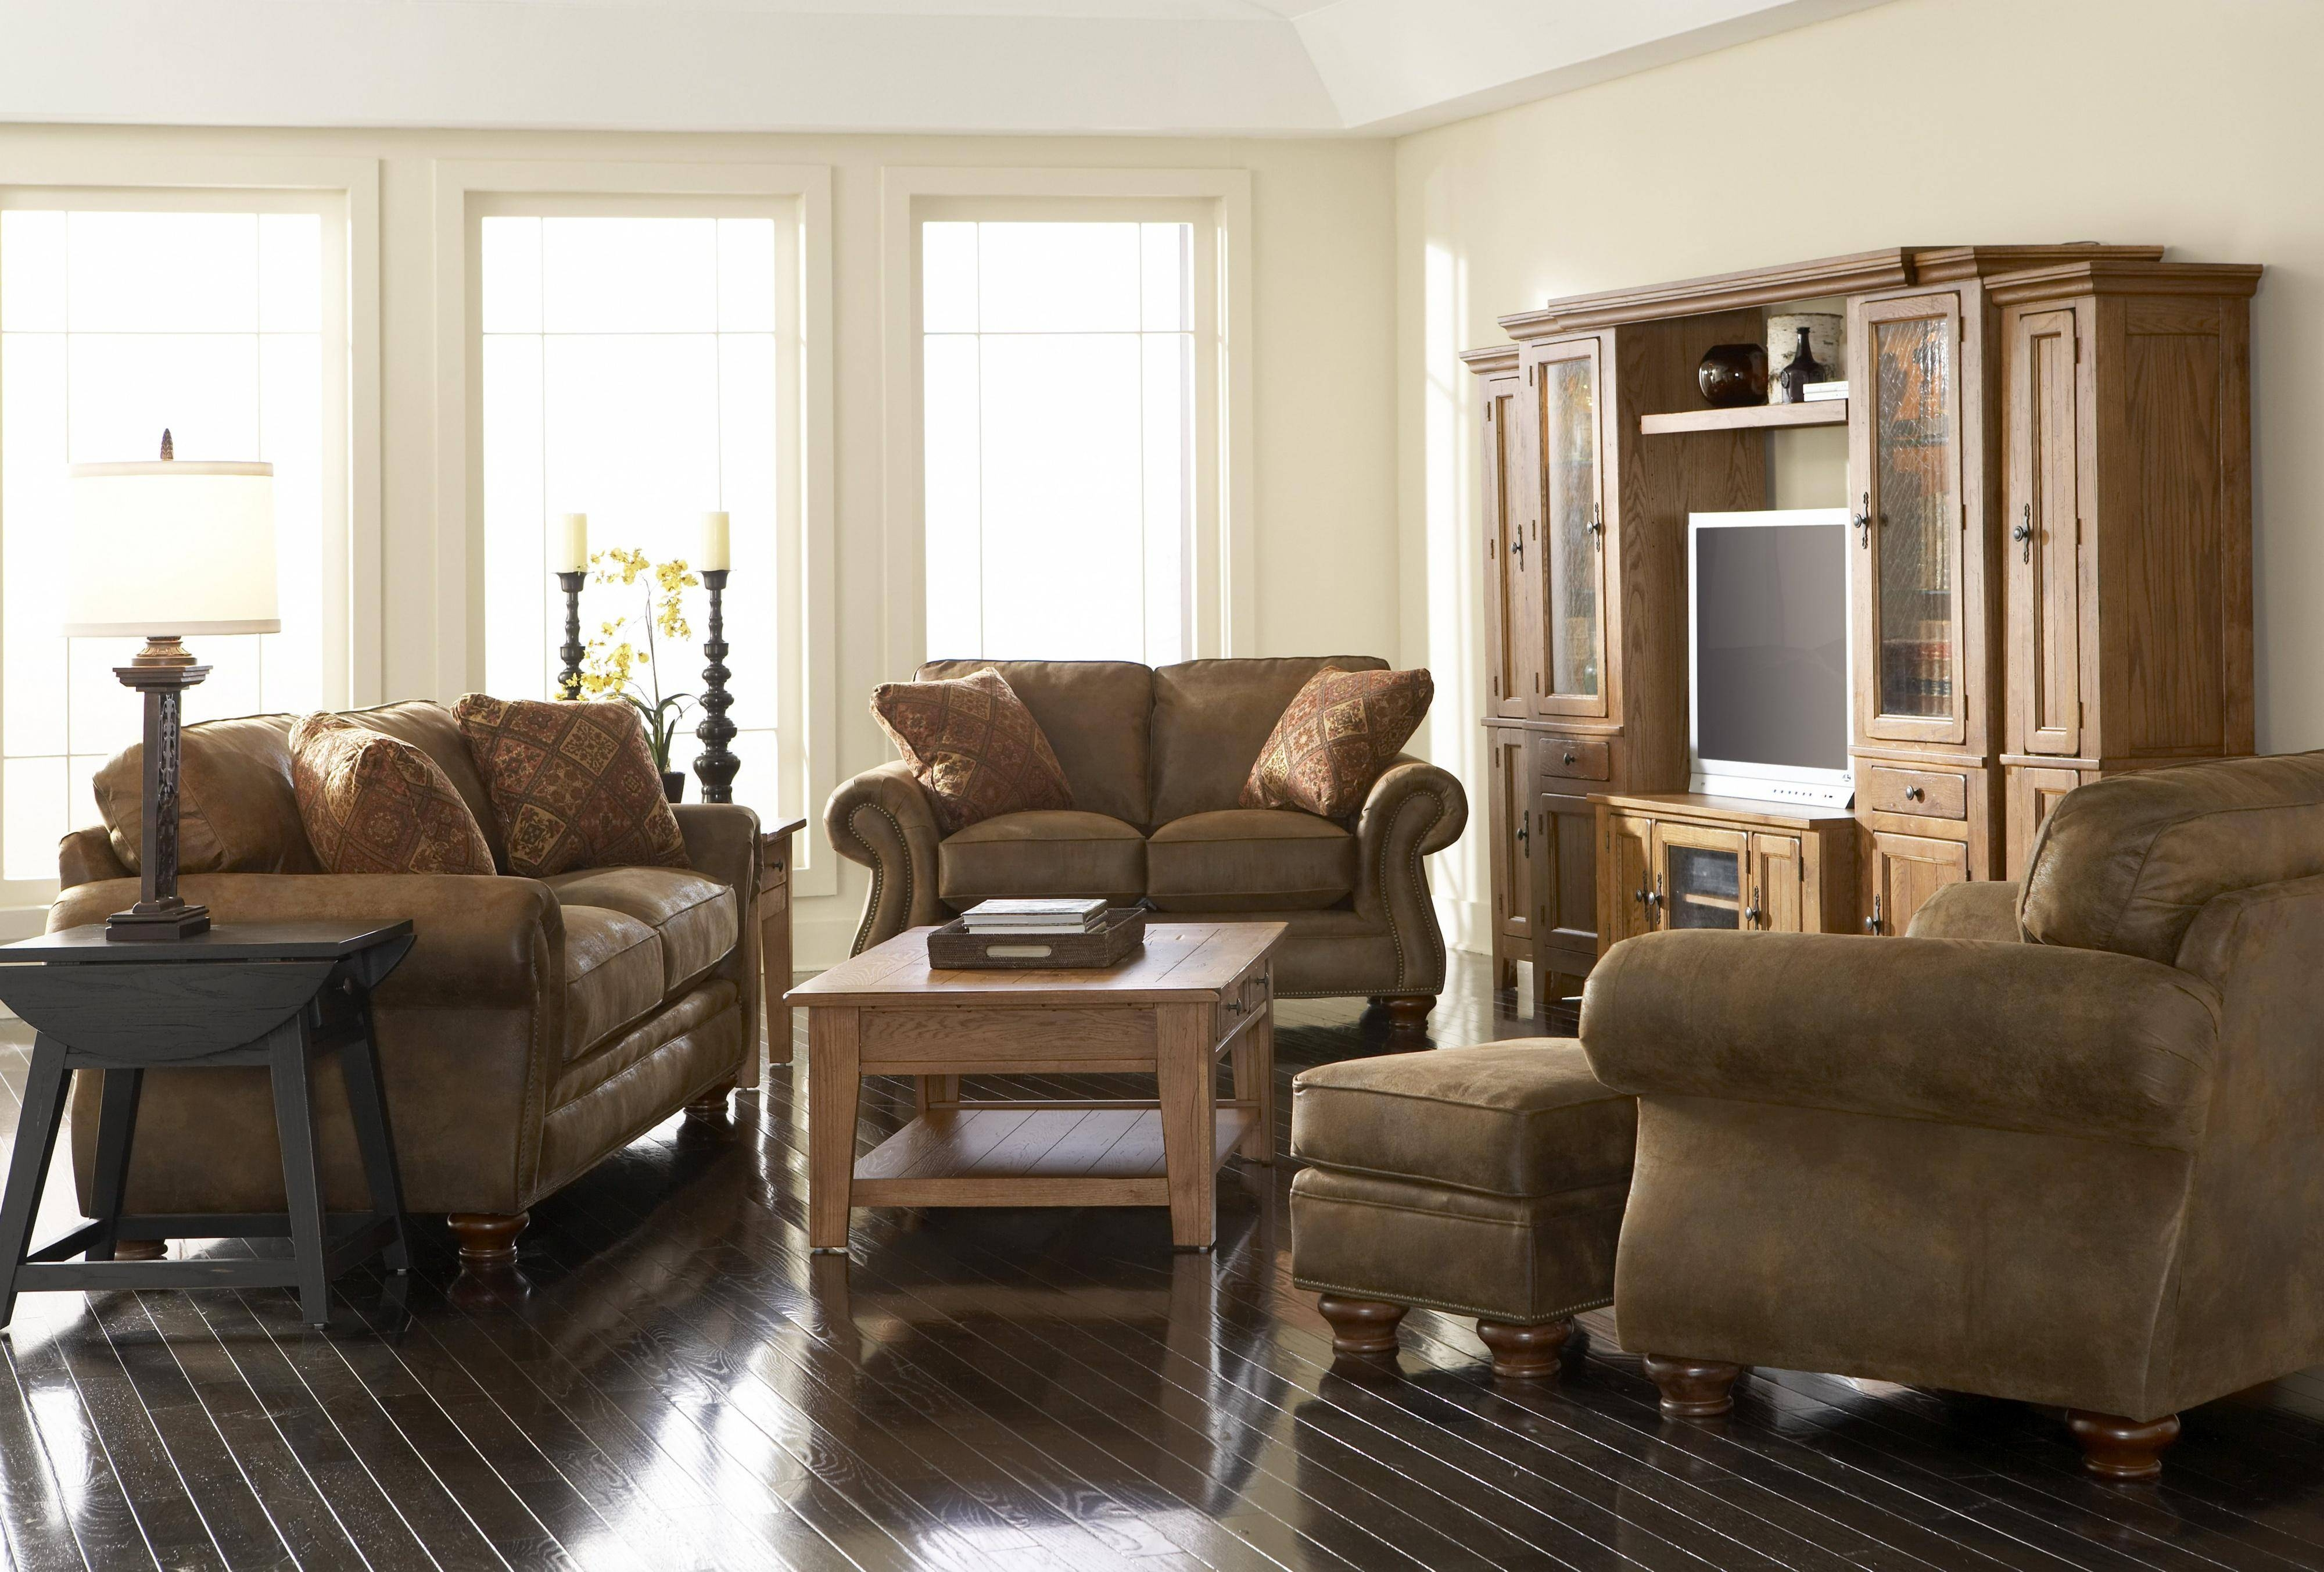 Bedroom: Broyhill Furniture For Interesting Interior Furniture with regard to Broyhill Harrison Sofas (Image 2 of 15)